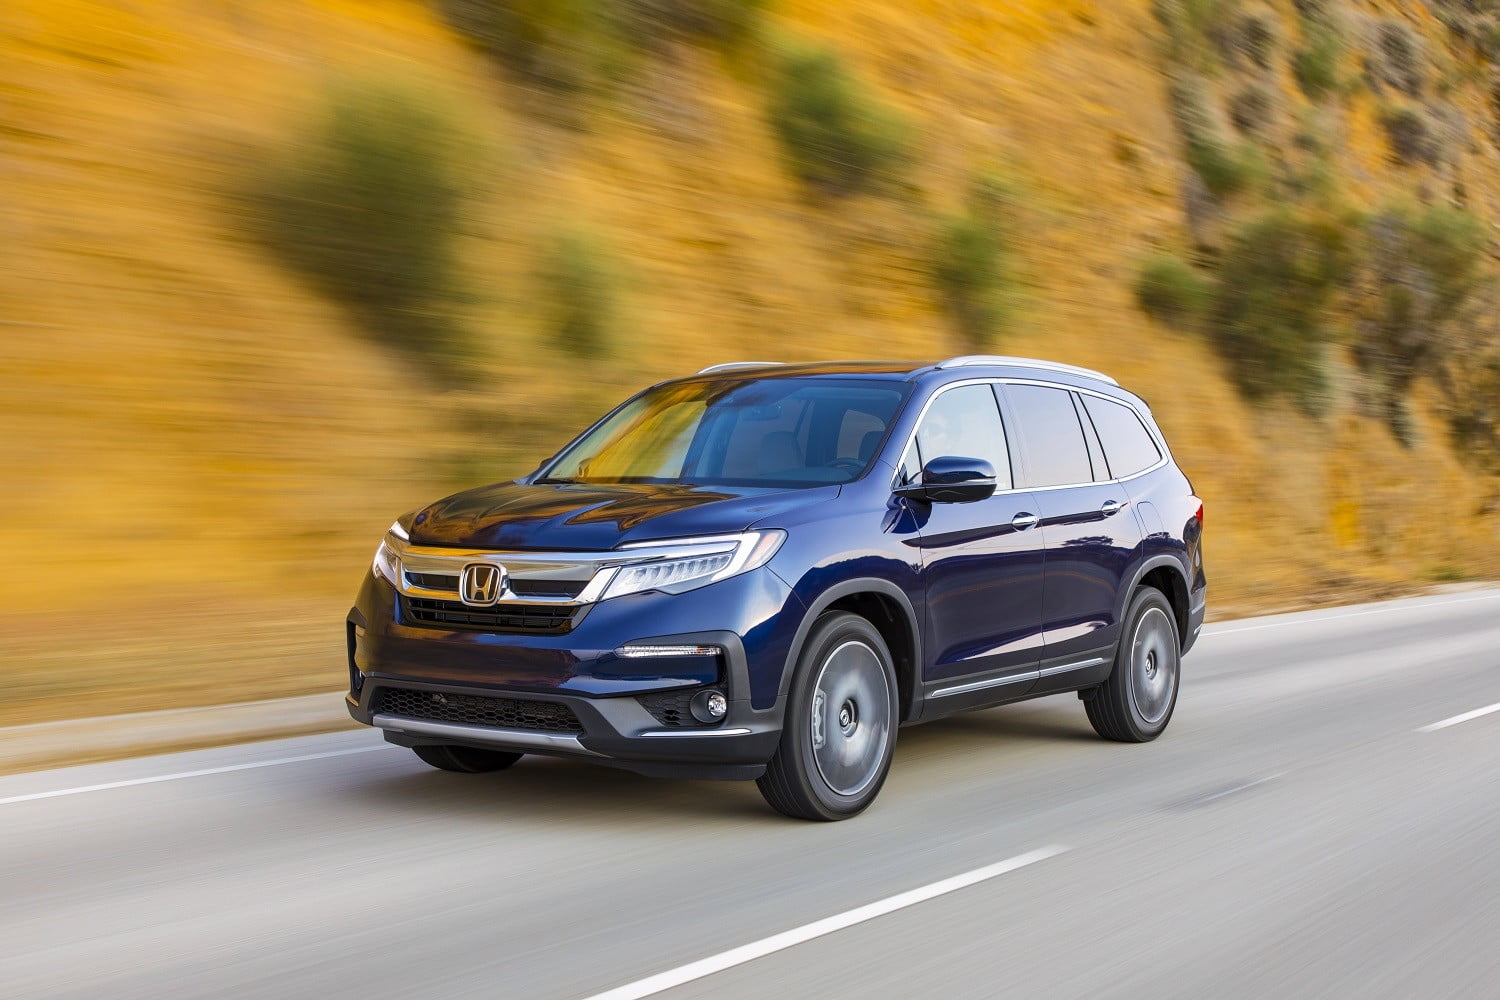 Pilot Vs Highlander >> Honda Pilot Vs Toyota Highlander Family Crossovers Compared